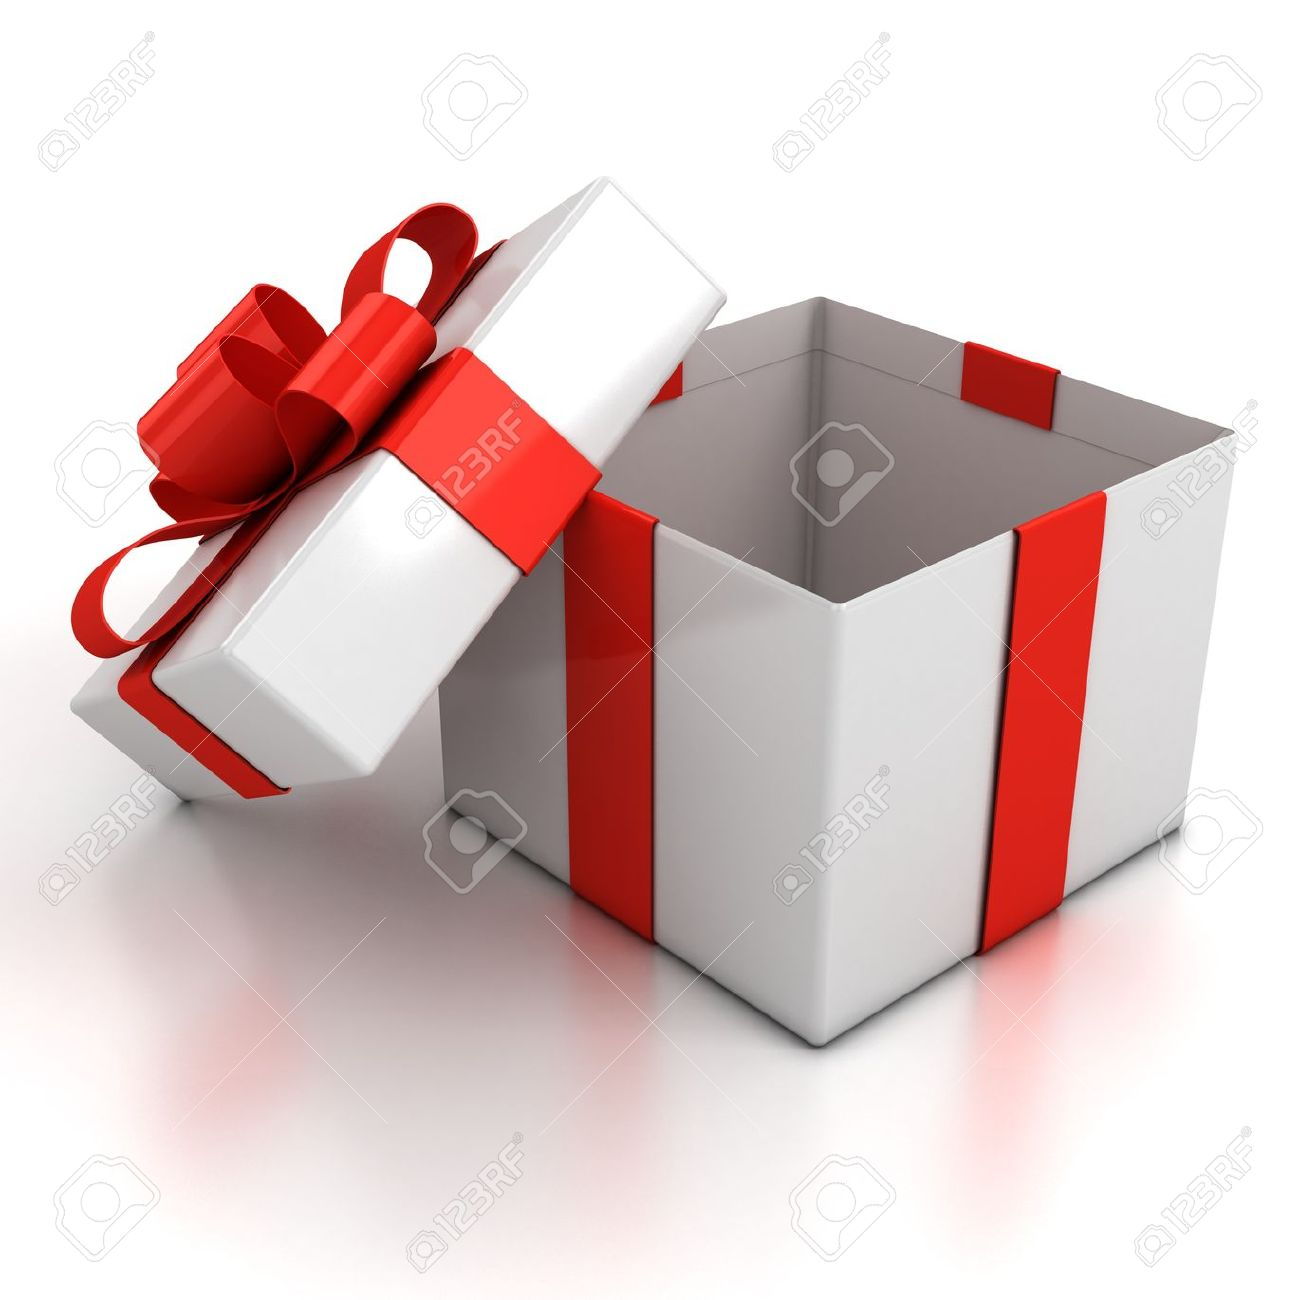 Open gift box over white background 3d illustration open gift box over white background 3d illustration 12331233 negle Gallery